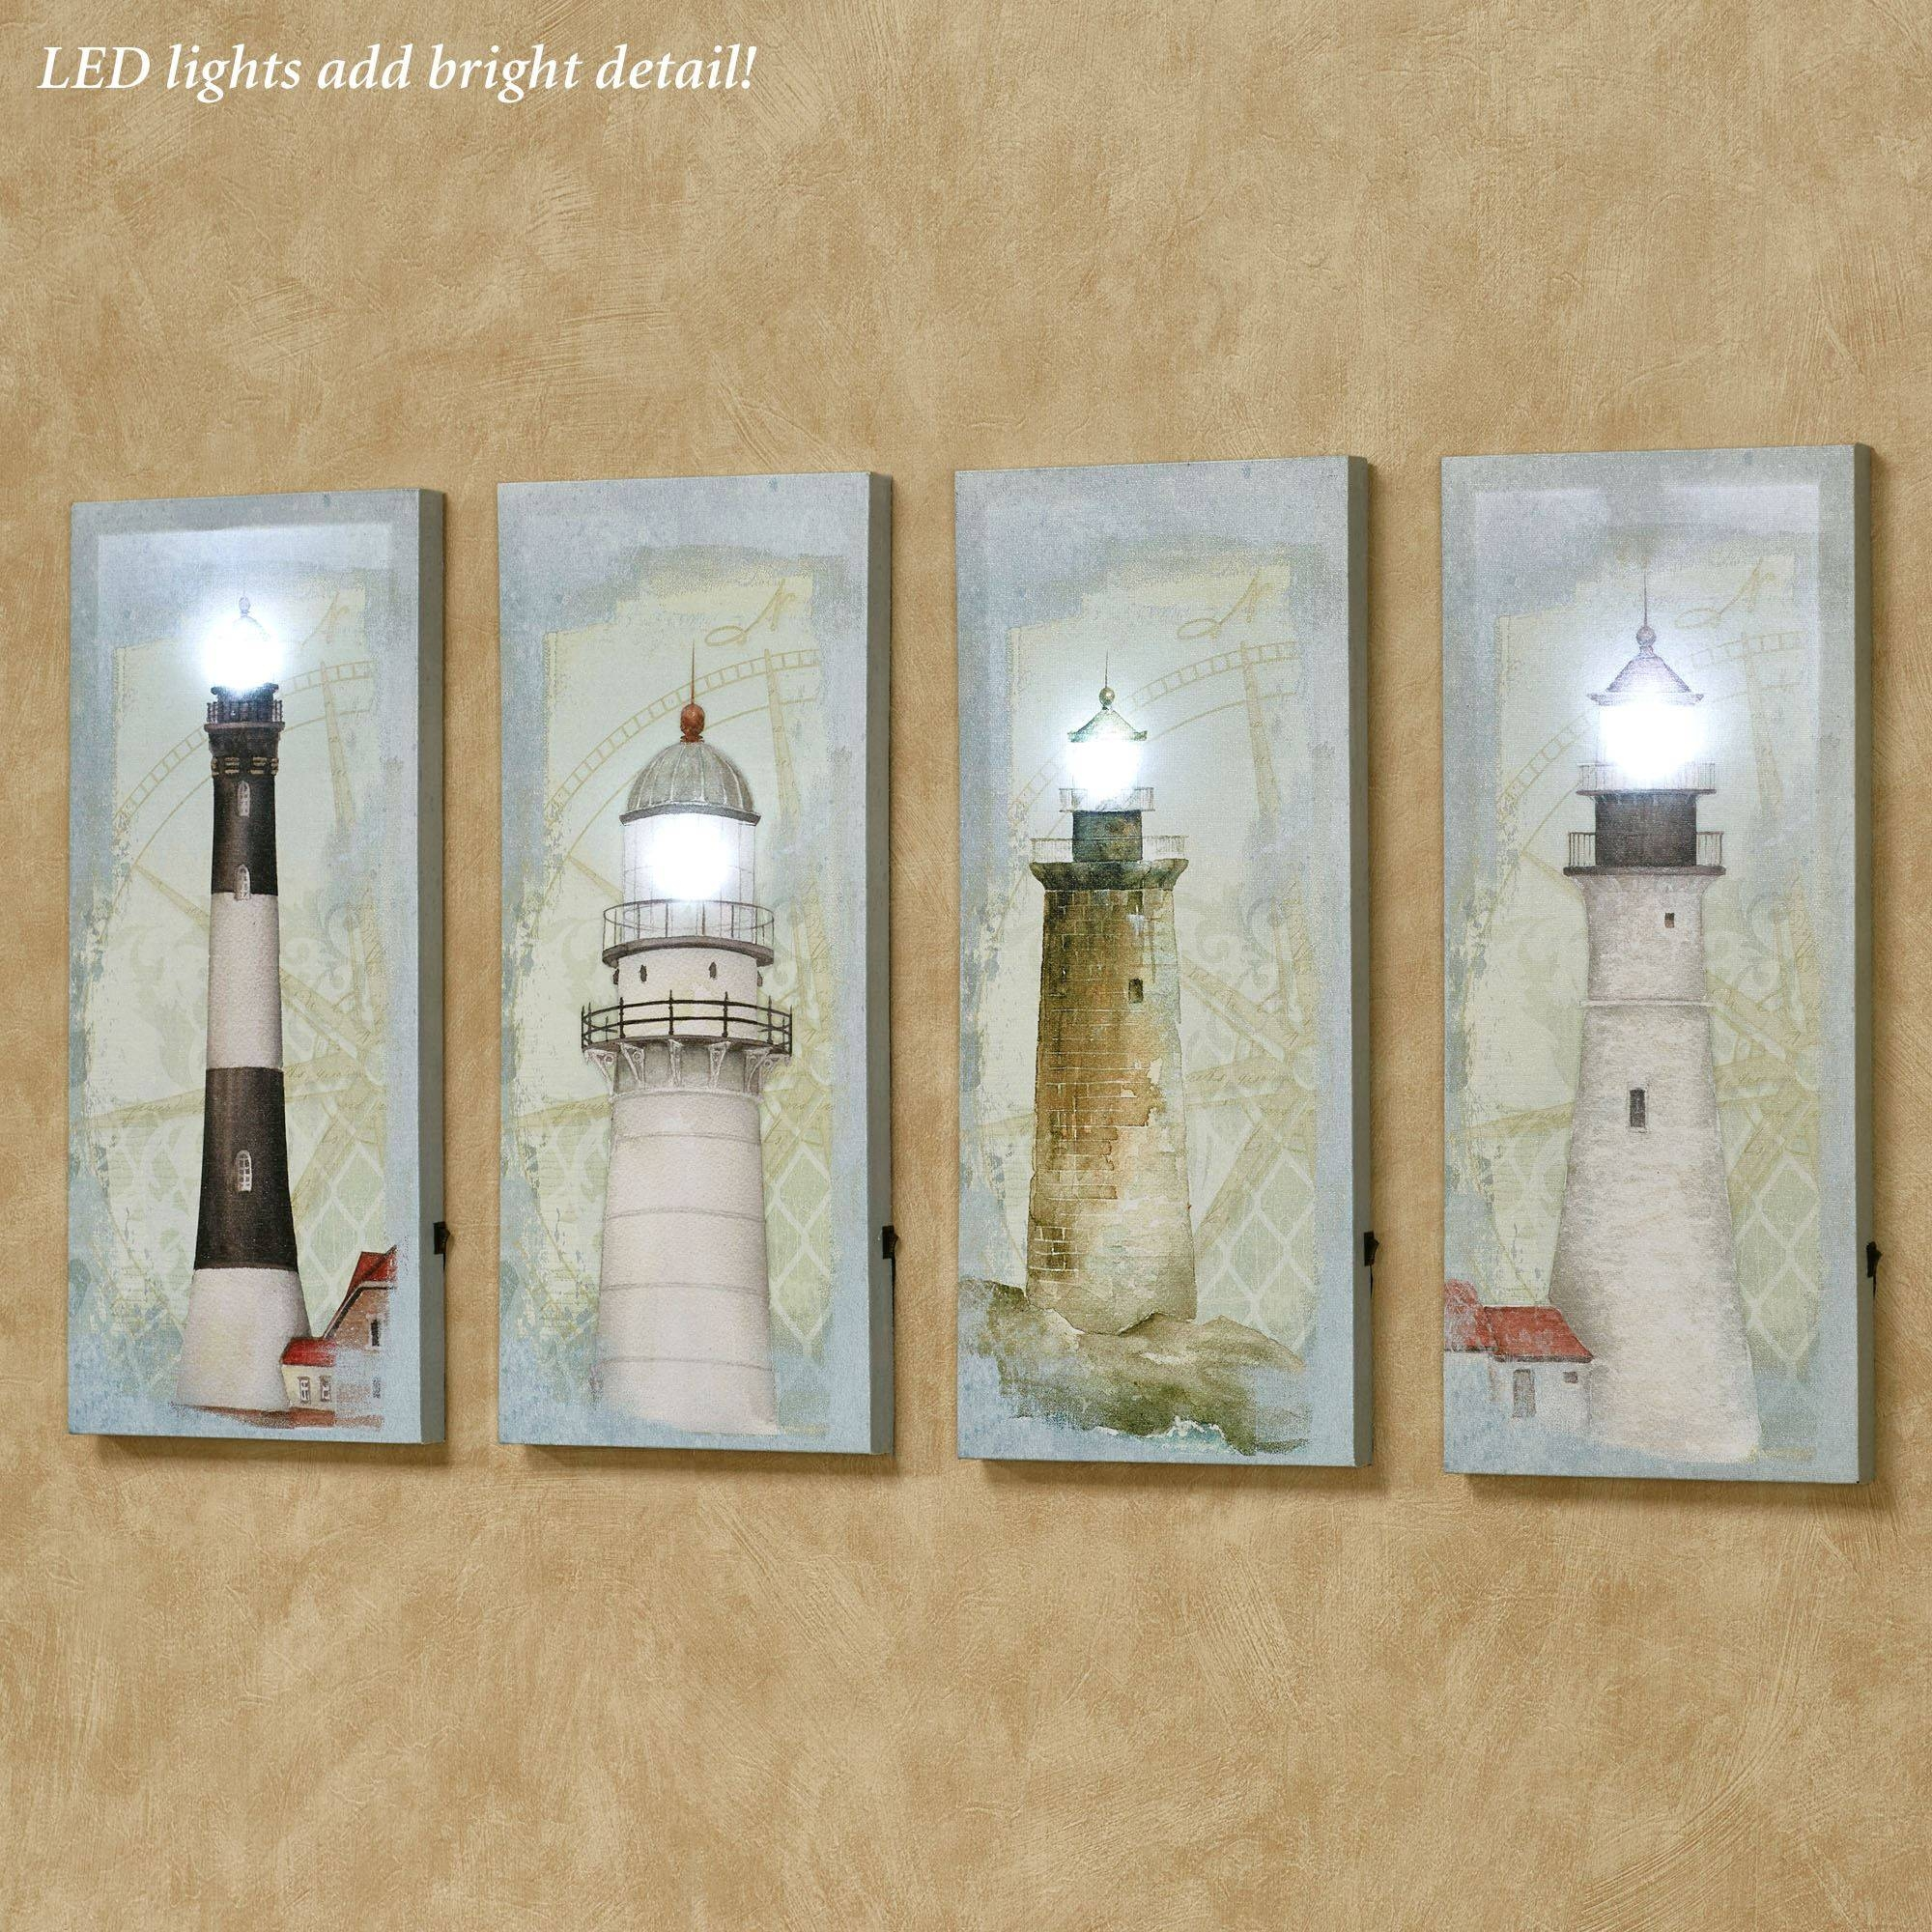 Coastal Lighthouse Led Lighted Canvas Wall Art Set Within Latest Coastal Wall Art Canvas (View 13 of 20)